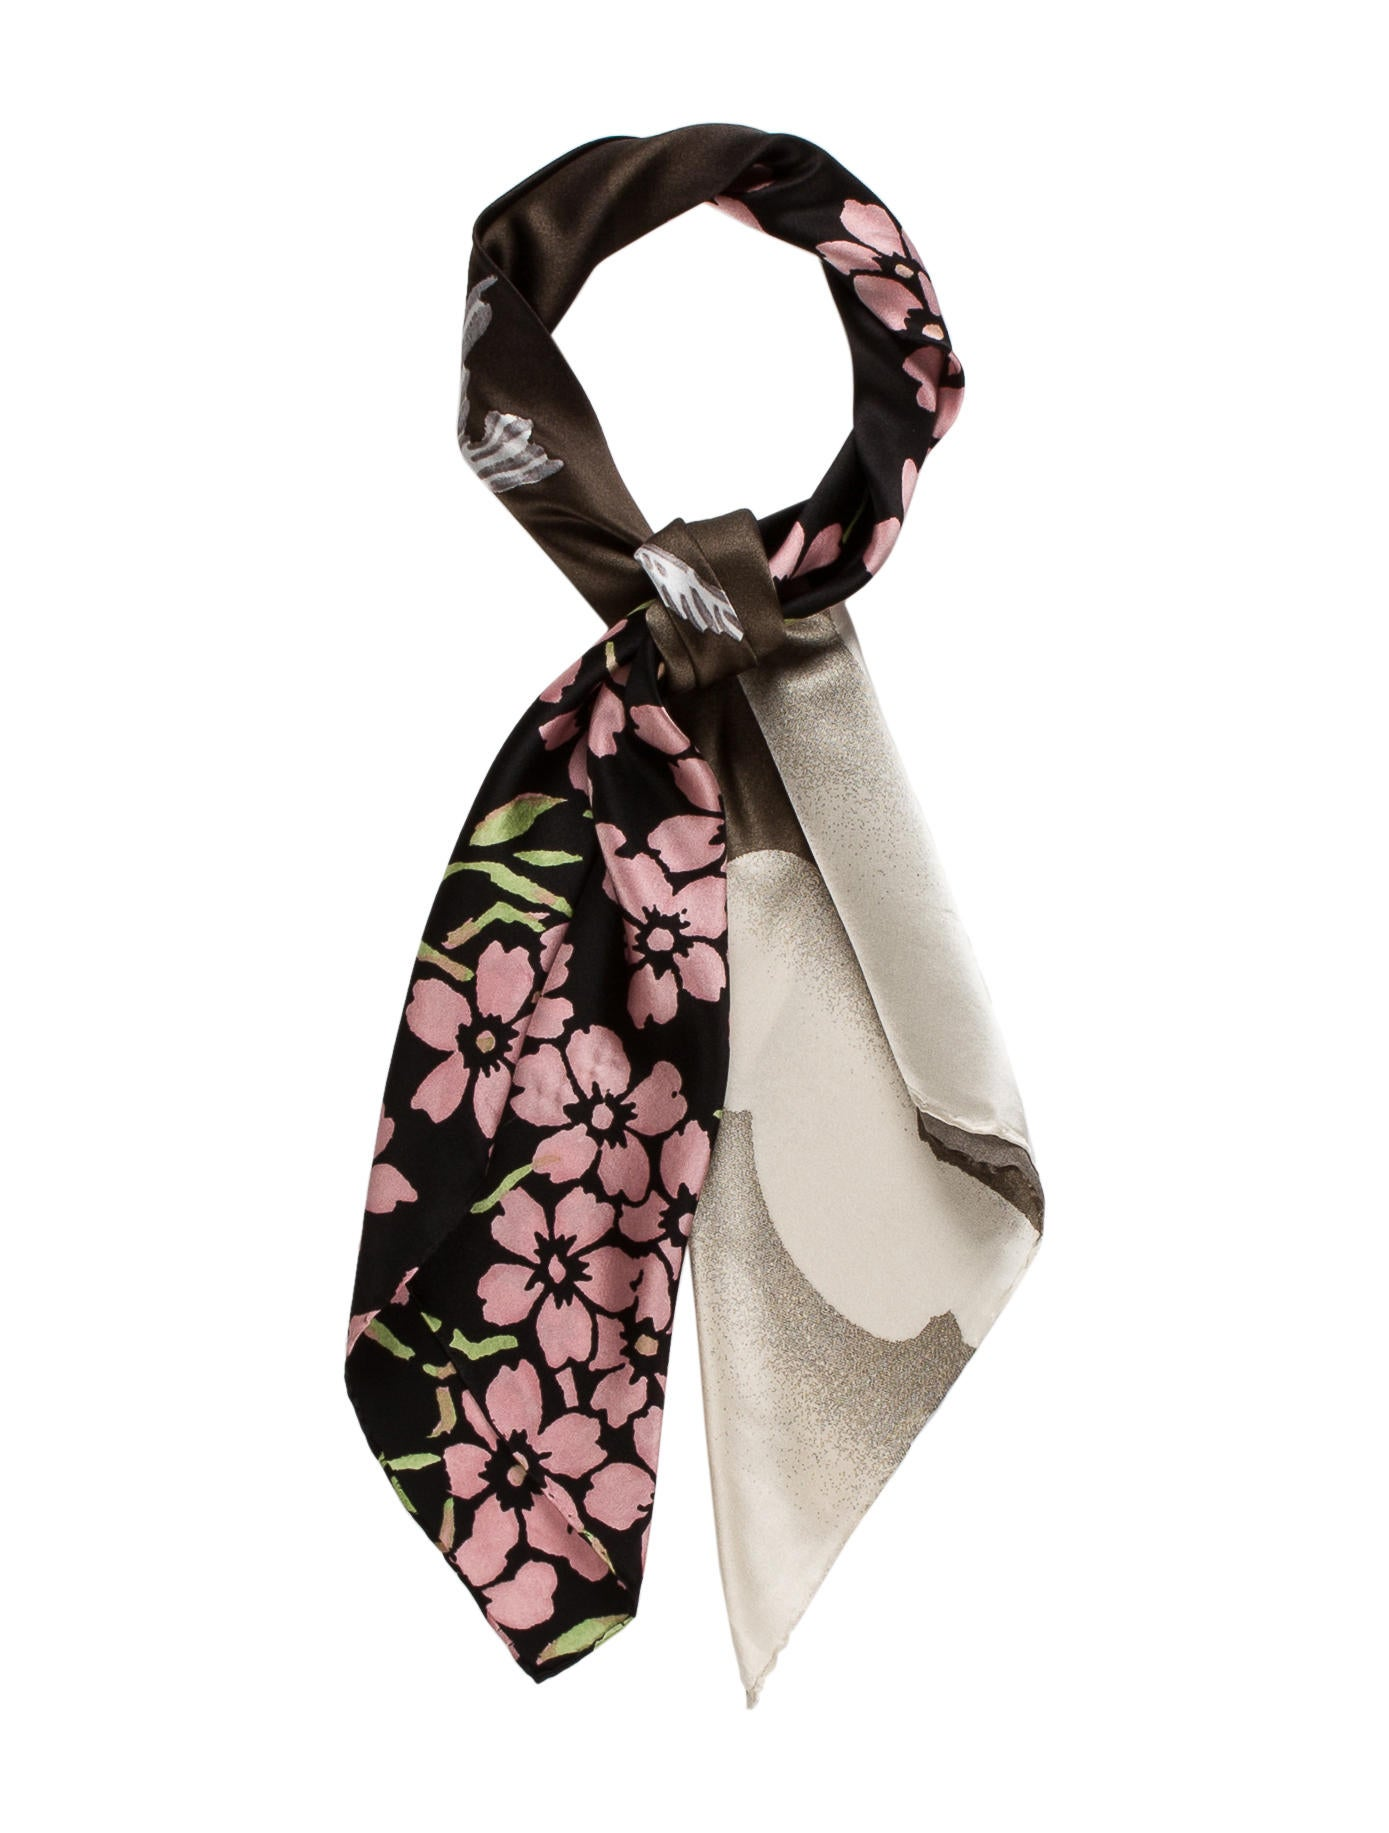 Depending on which fabric you choose, the print will be about % visible on the backside. Baby Rolled Machine Finished Hem Like all of our products, each scarf is printed, hand-cut and sewn by skilled trades people using top of the line finishing machines.